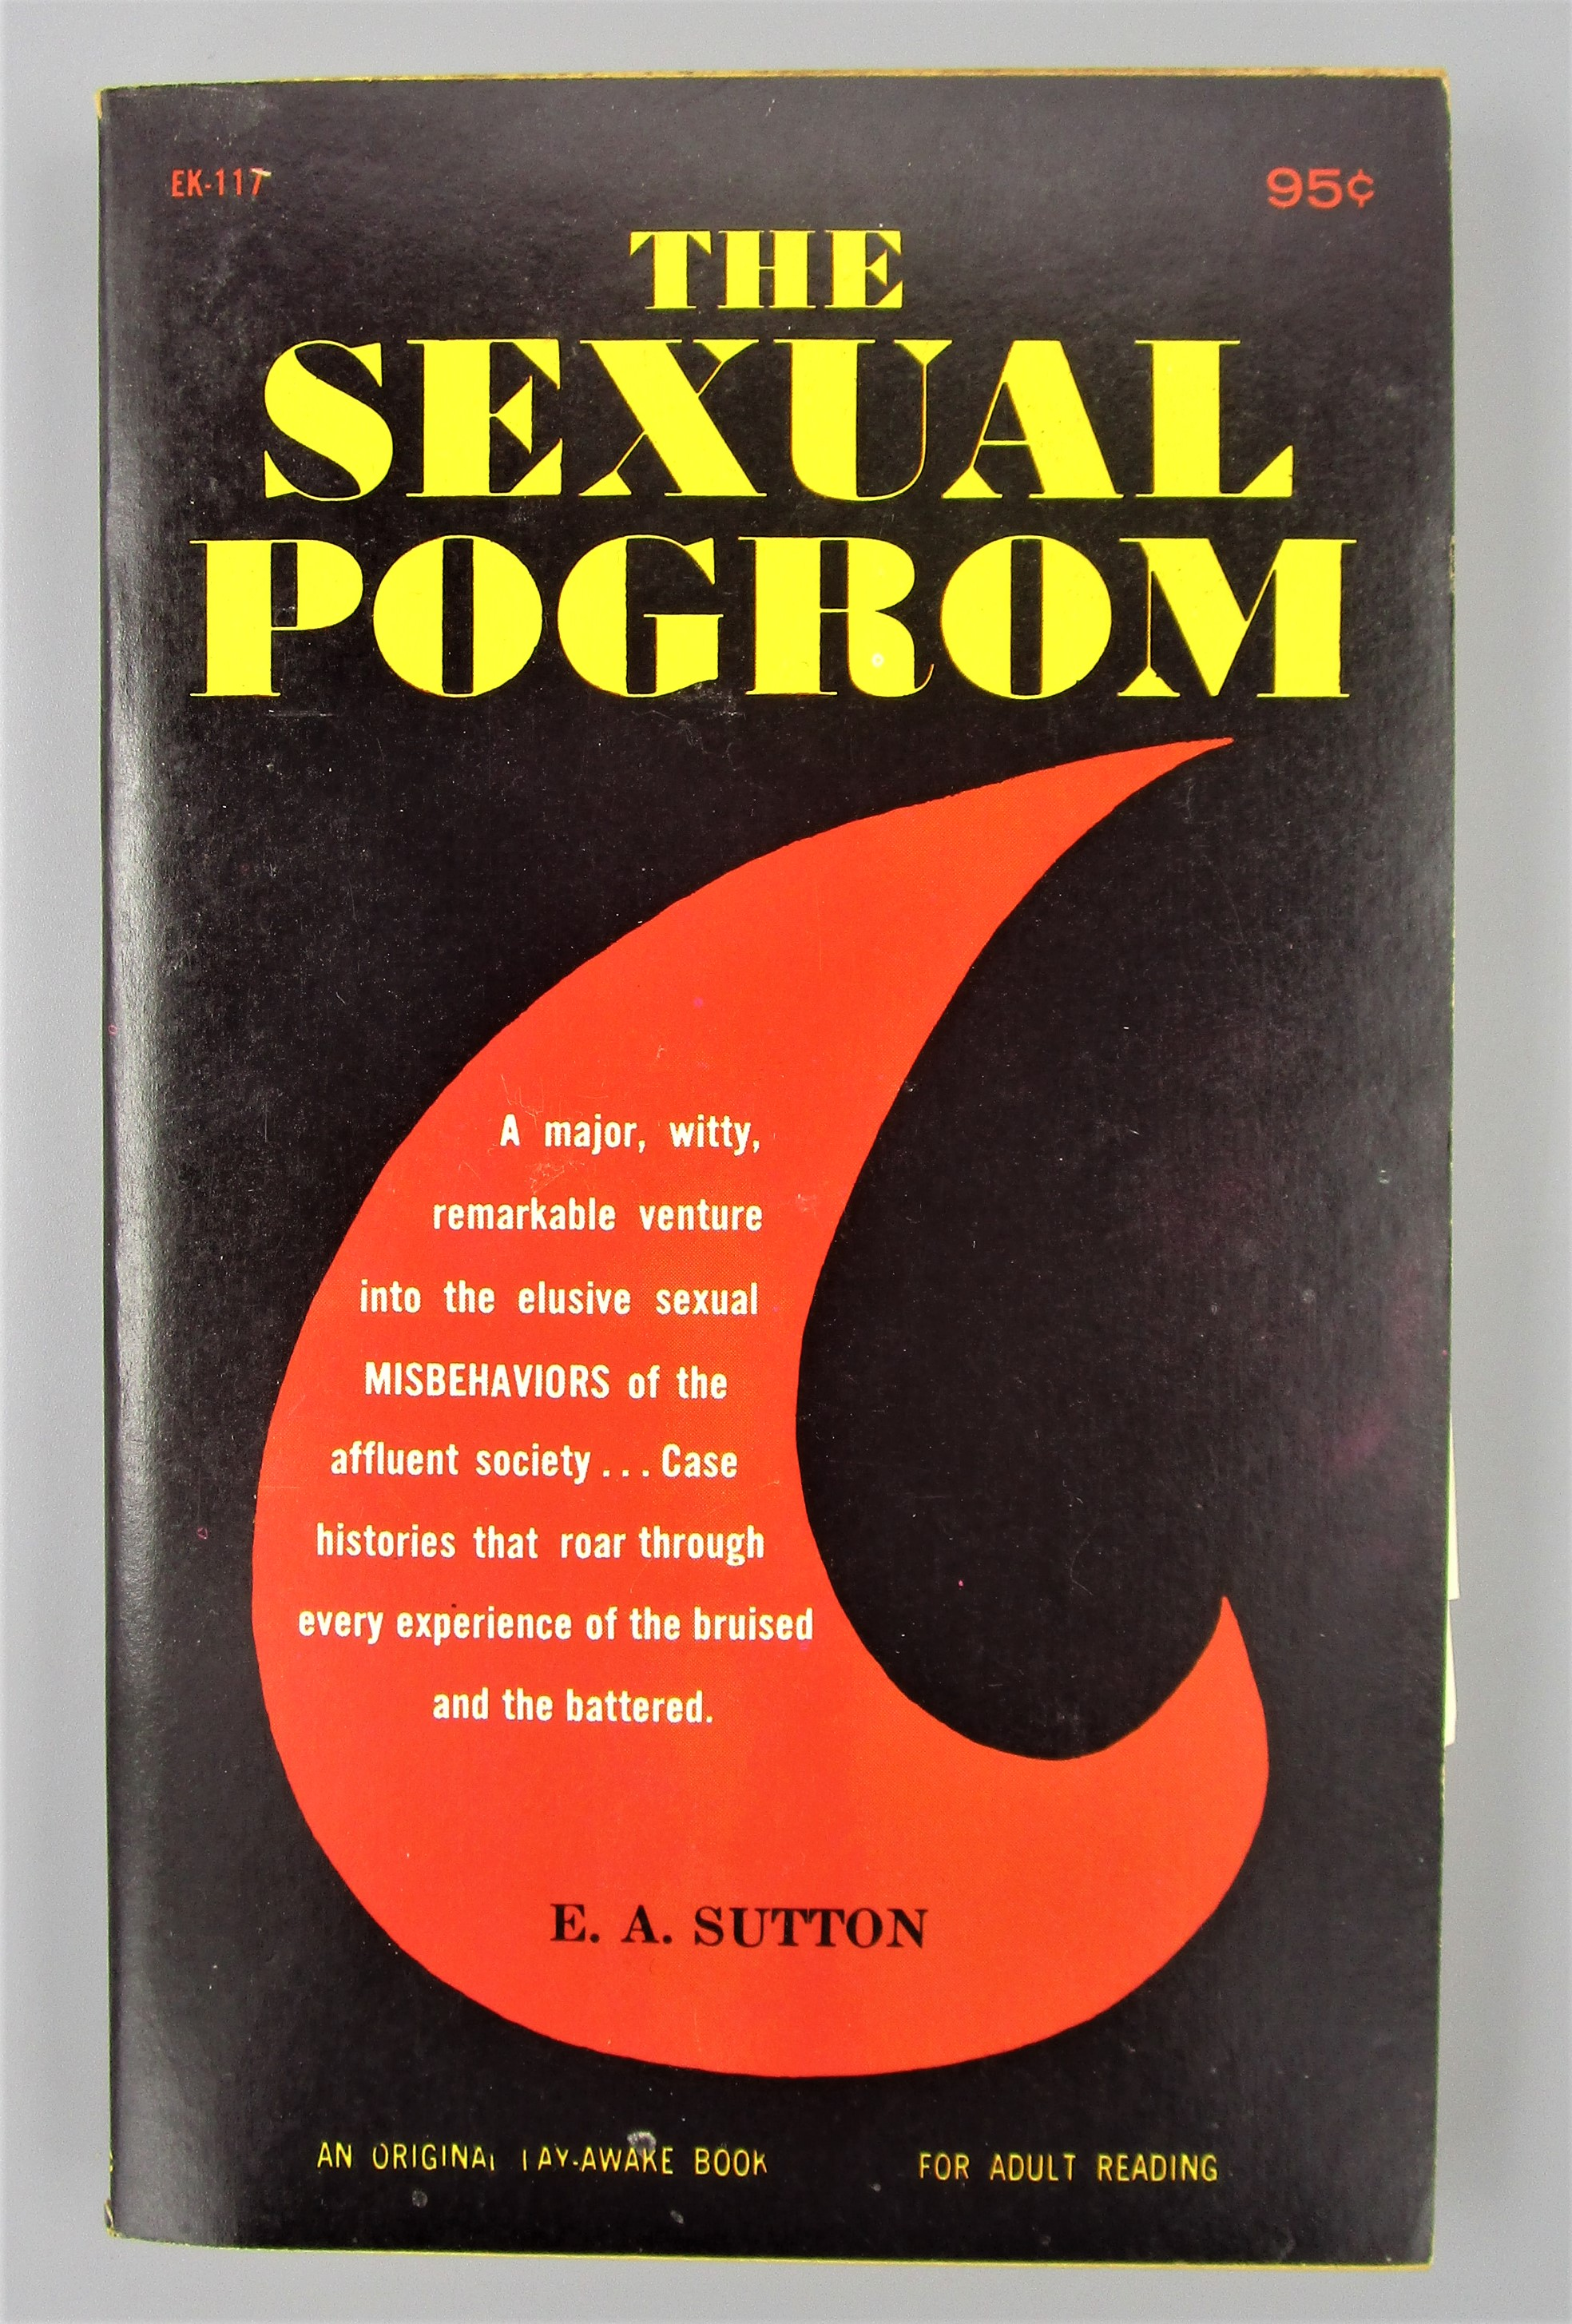 THE SEXUAL POGROM, by E.A. Sutton - 1967